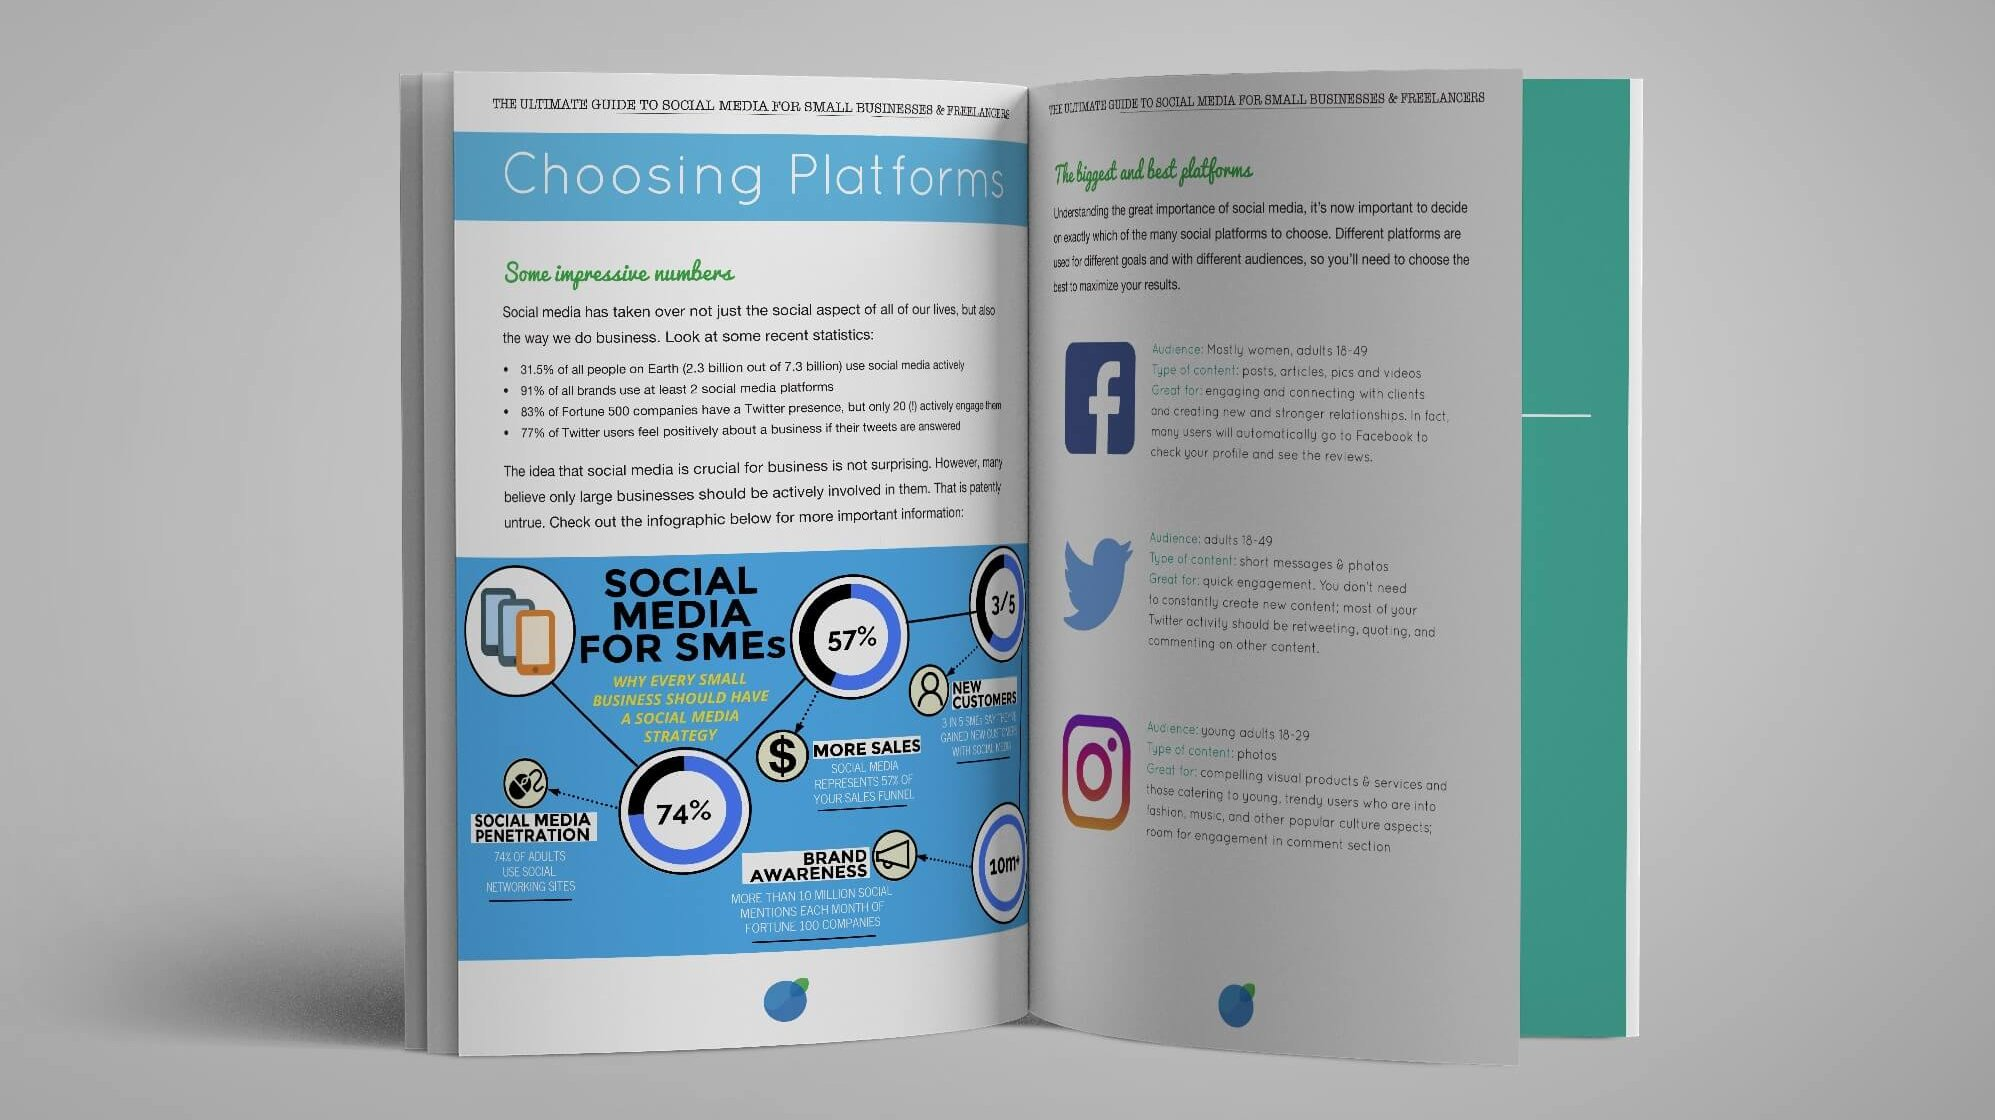 The Ultimate Guide to Social Media for Small Businesses & Freelancers is chock full of amazing tips